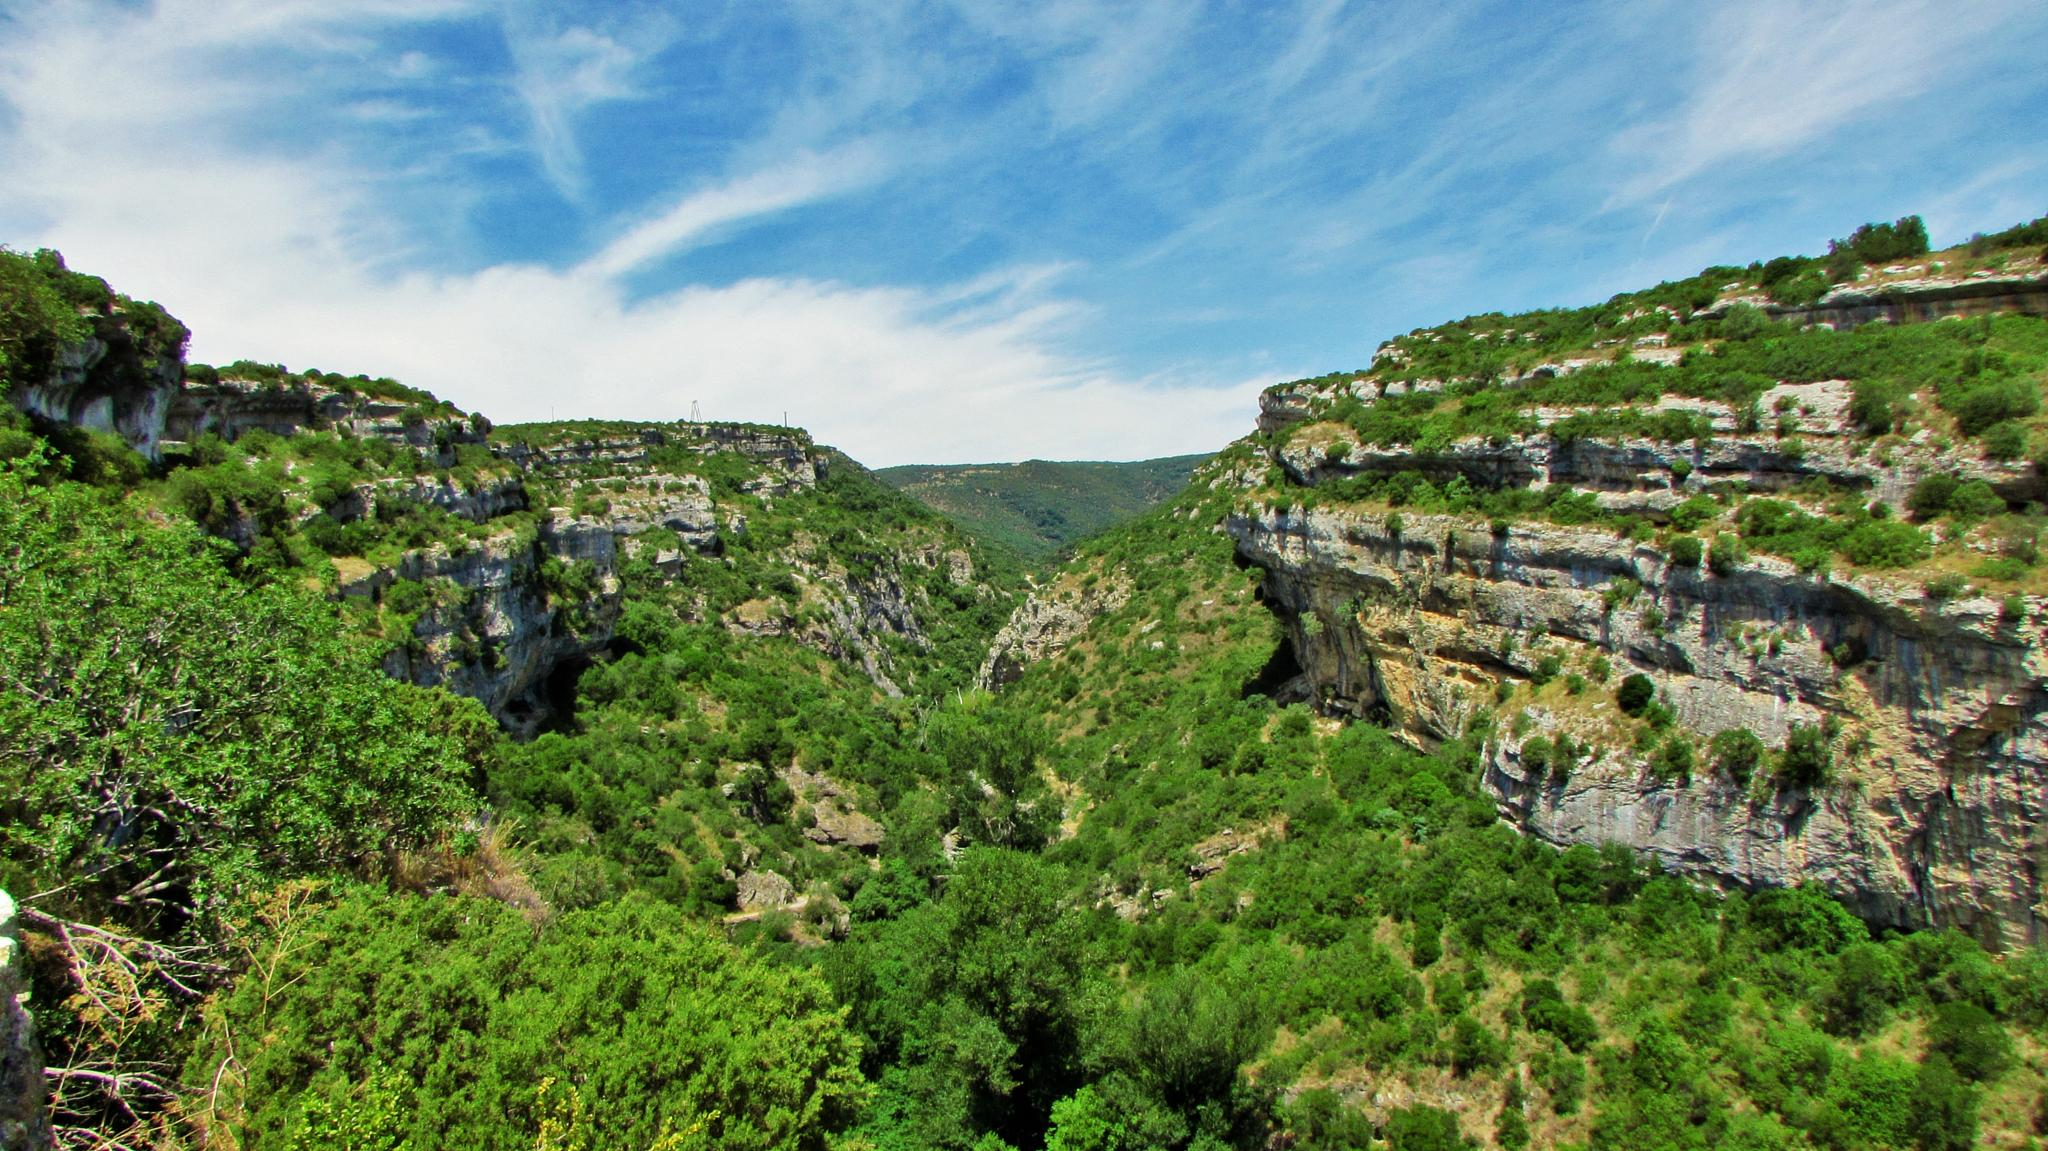 Gorge in Minerve by Simon Willford